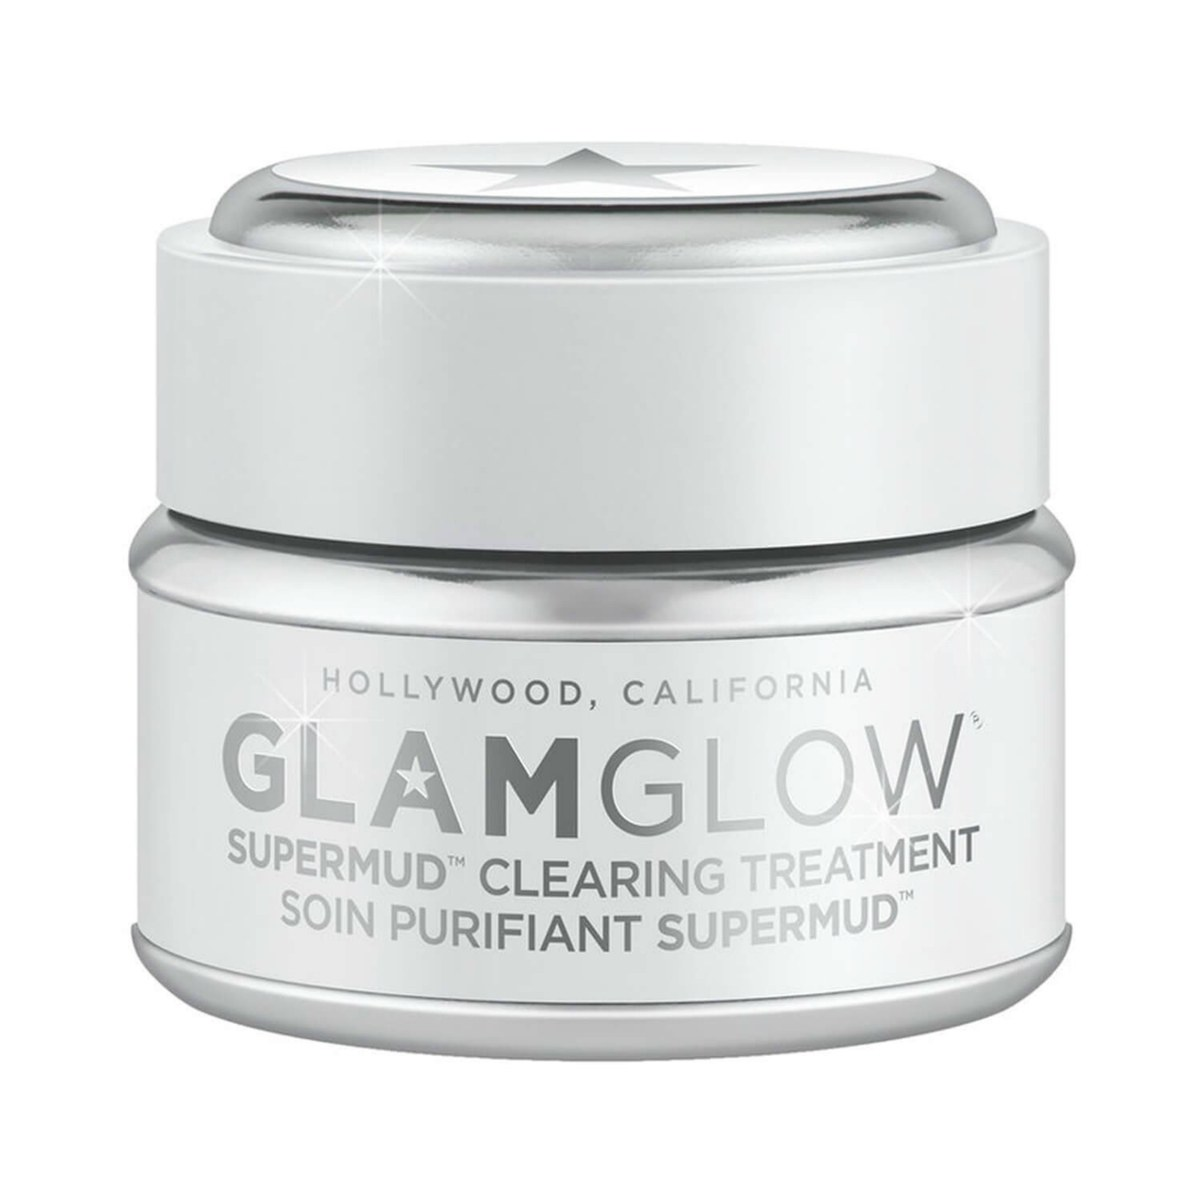 glamglow-supermud-clearing-treatment.jpg